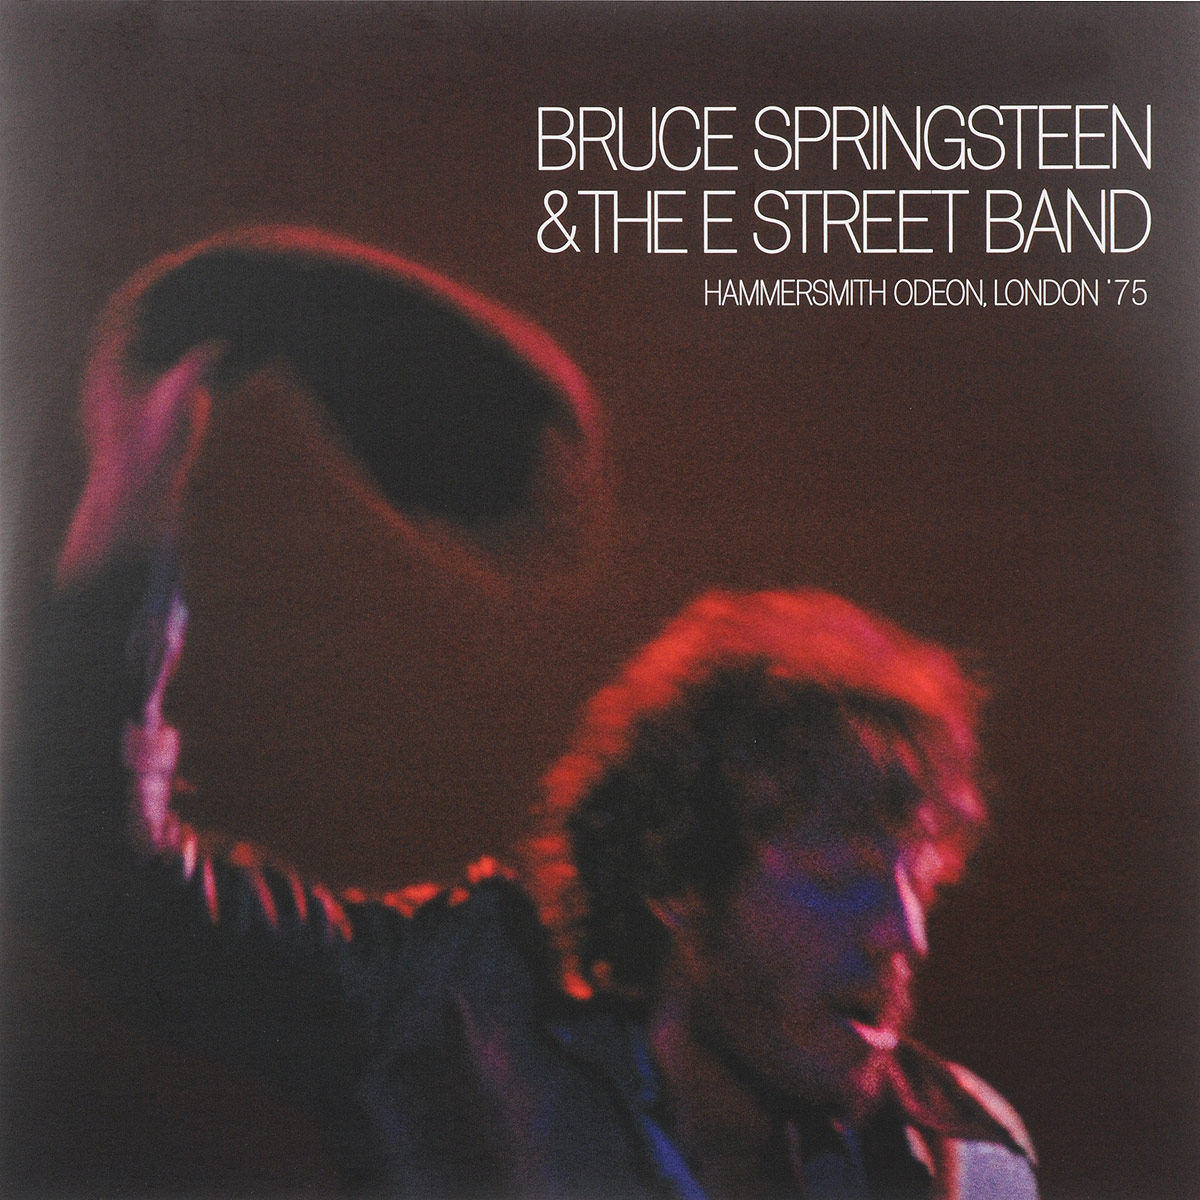 Брюс Спрингстин,The E Street Band Bruce Springsteen & The E Street Band. Hammersmith Odeon, London '75 (4 LP) bruce logan e environmental transport processes